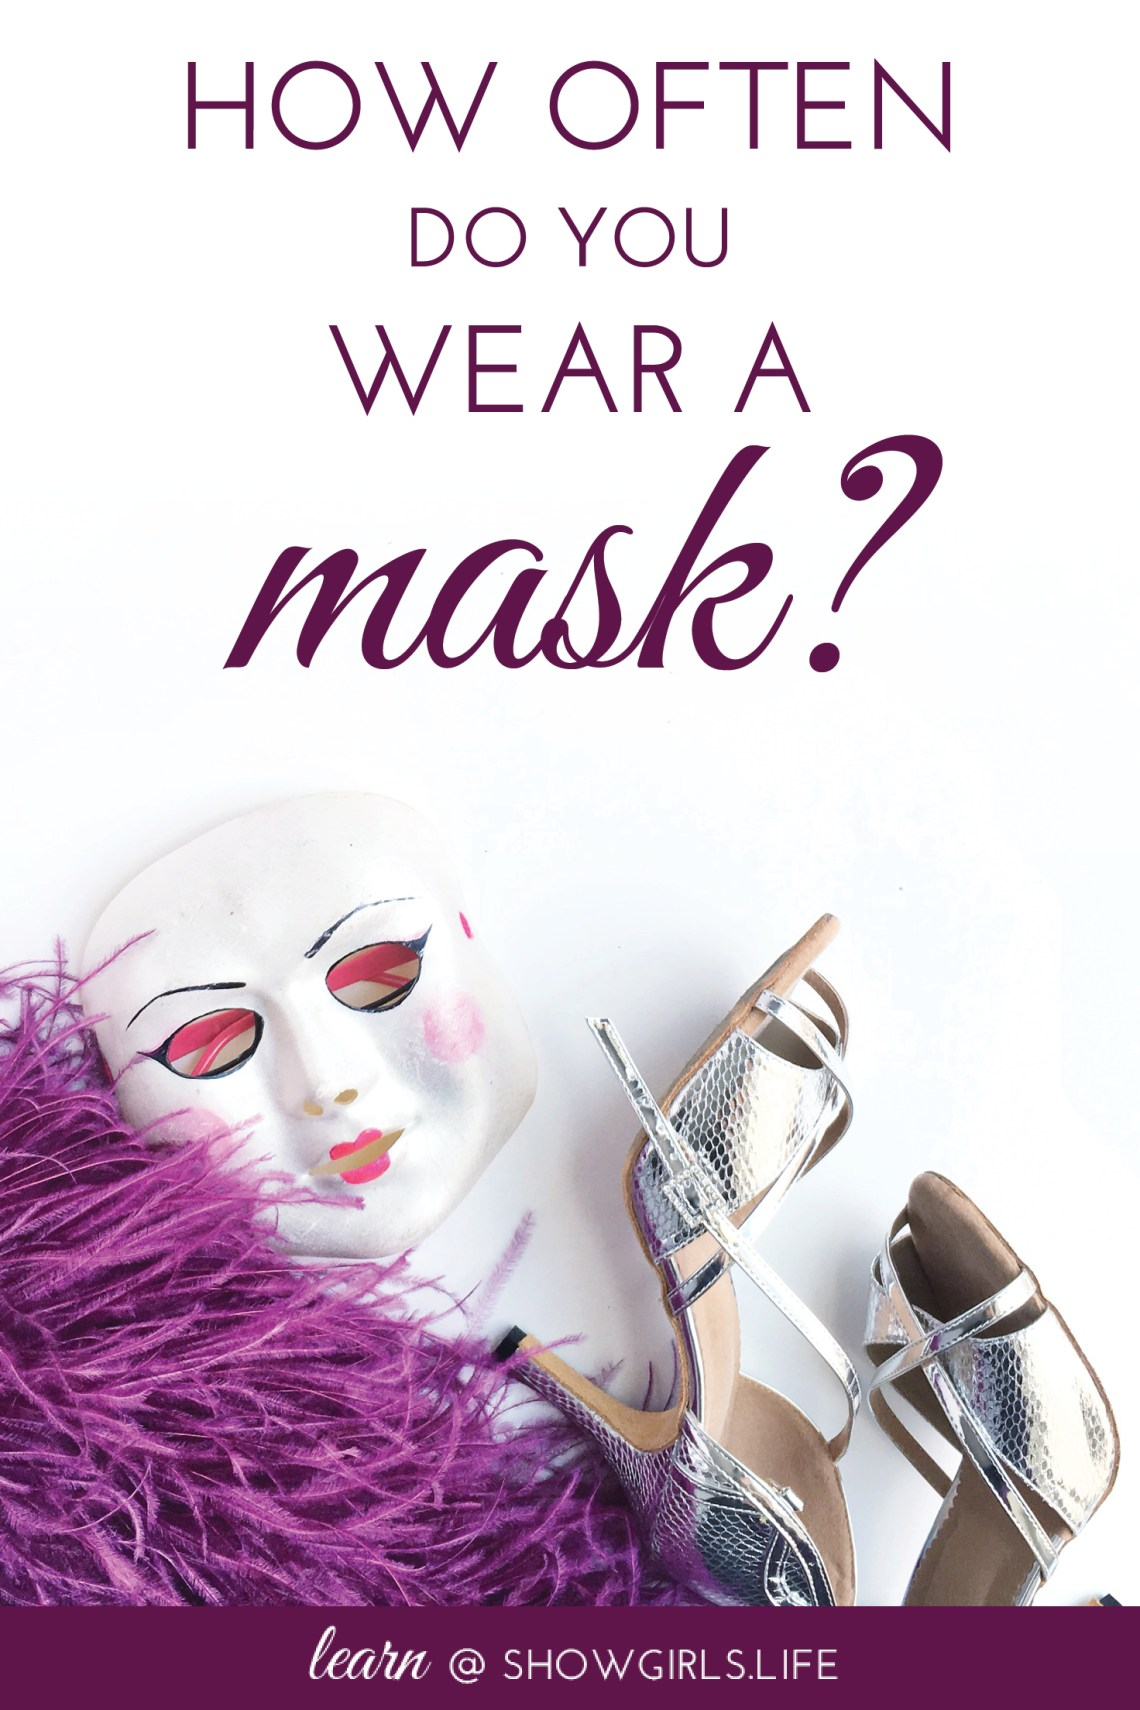 Showgirls.Life – How often do you wear a mask?